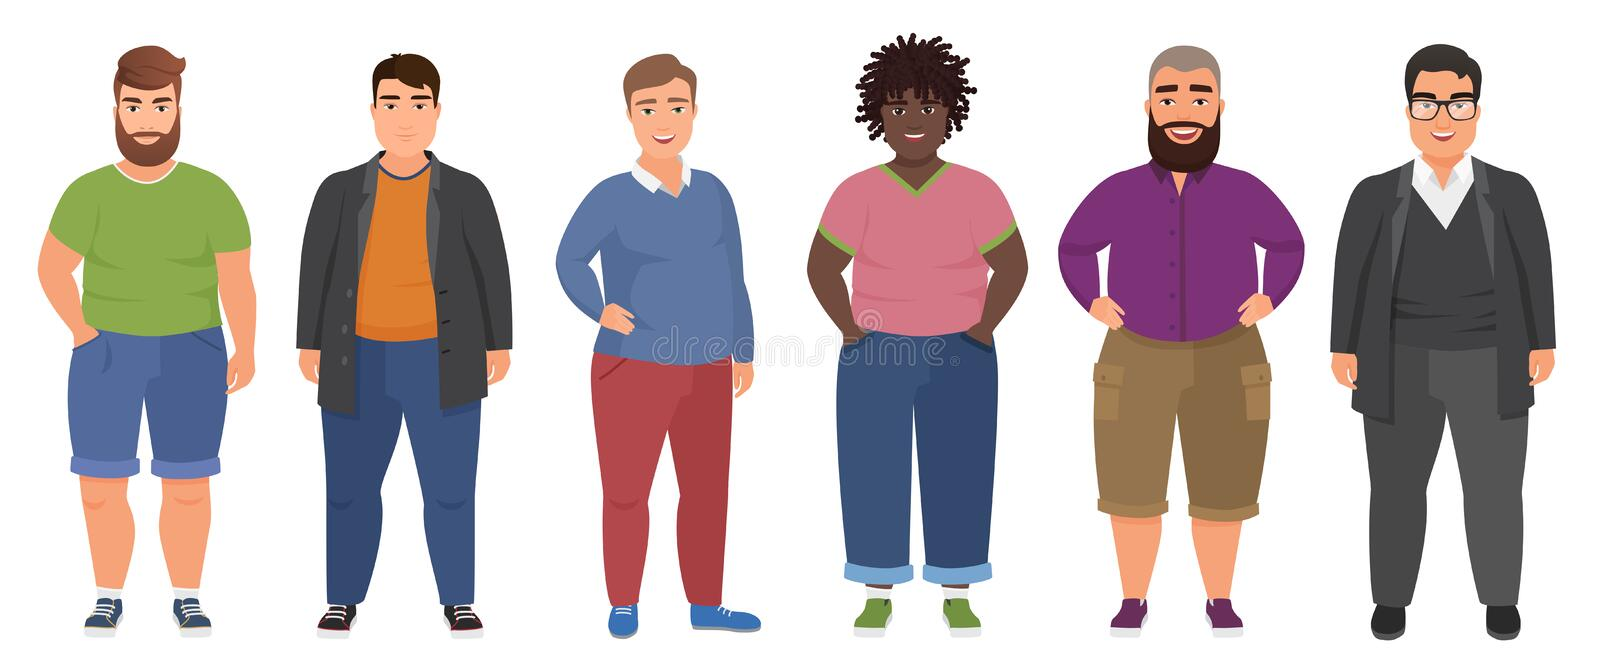 Happy fat man set in casual clothes. Funny cartoon bigg guys characters collection. royalty free illustration